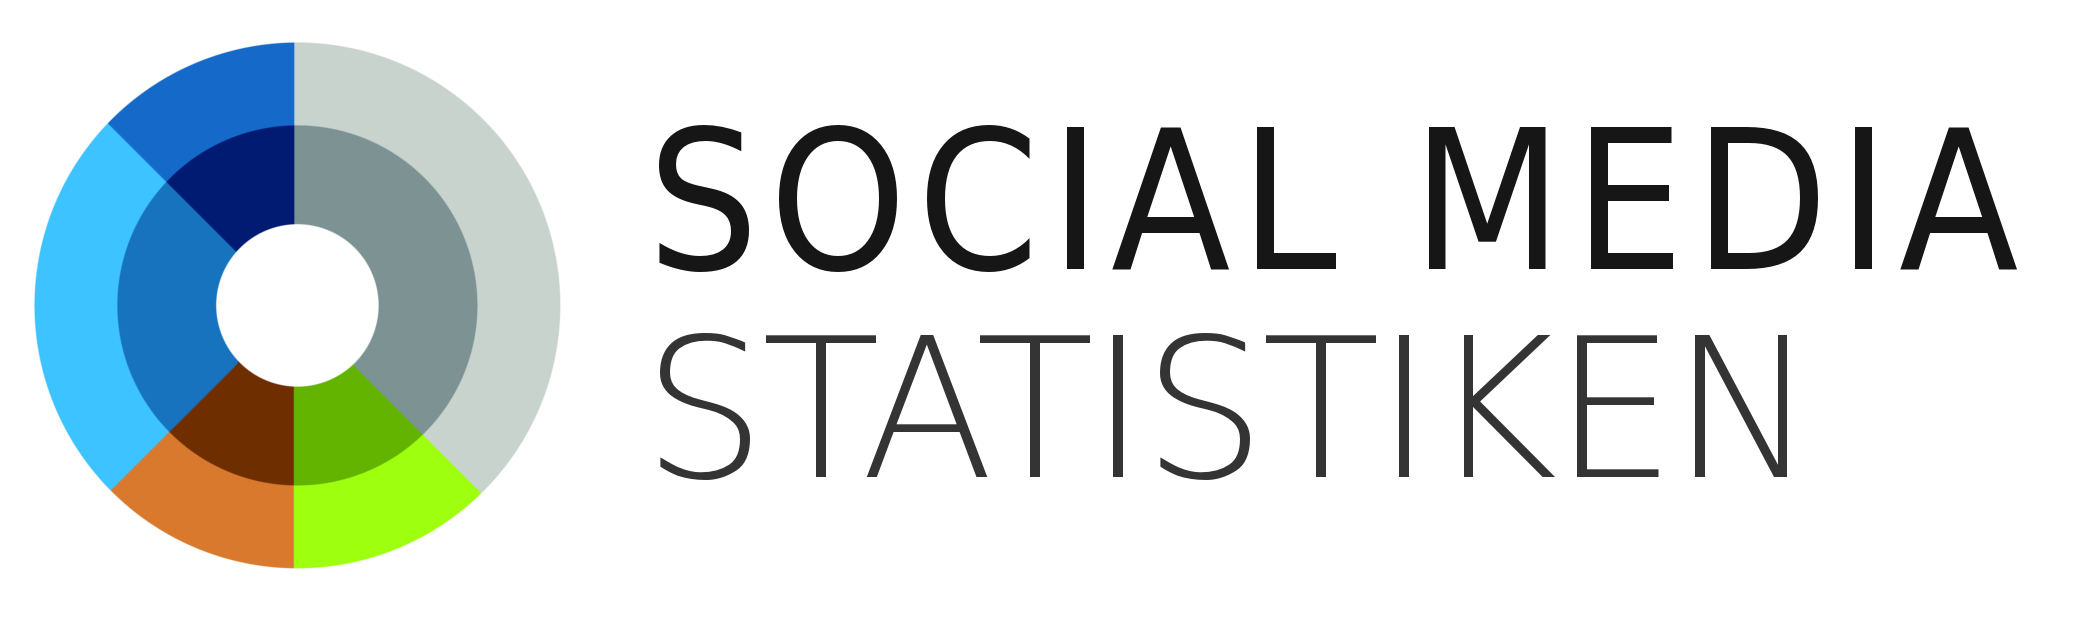 DER Statistikpool und Blog zu Social-Media-Marketing